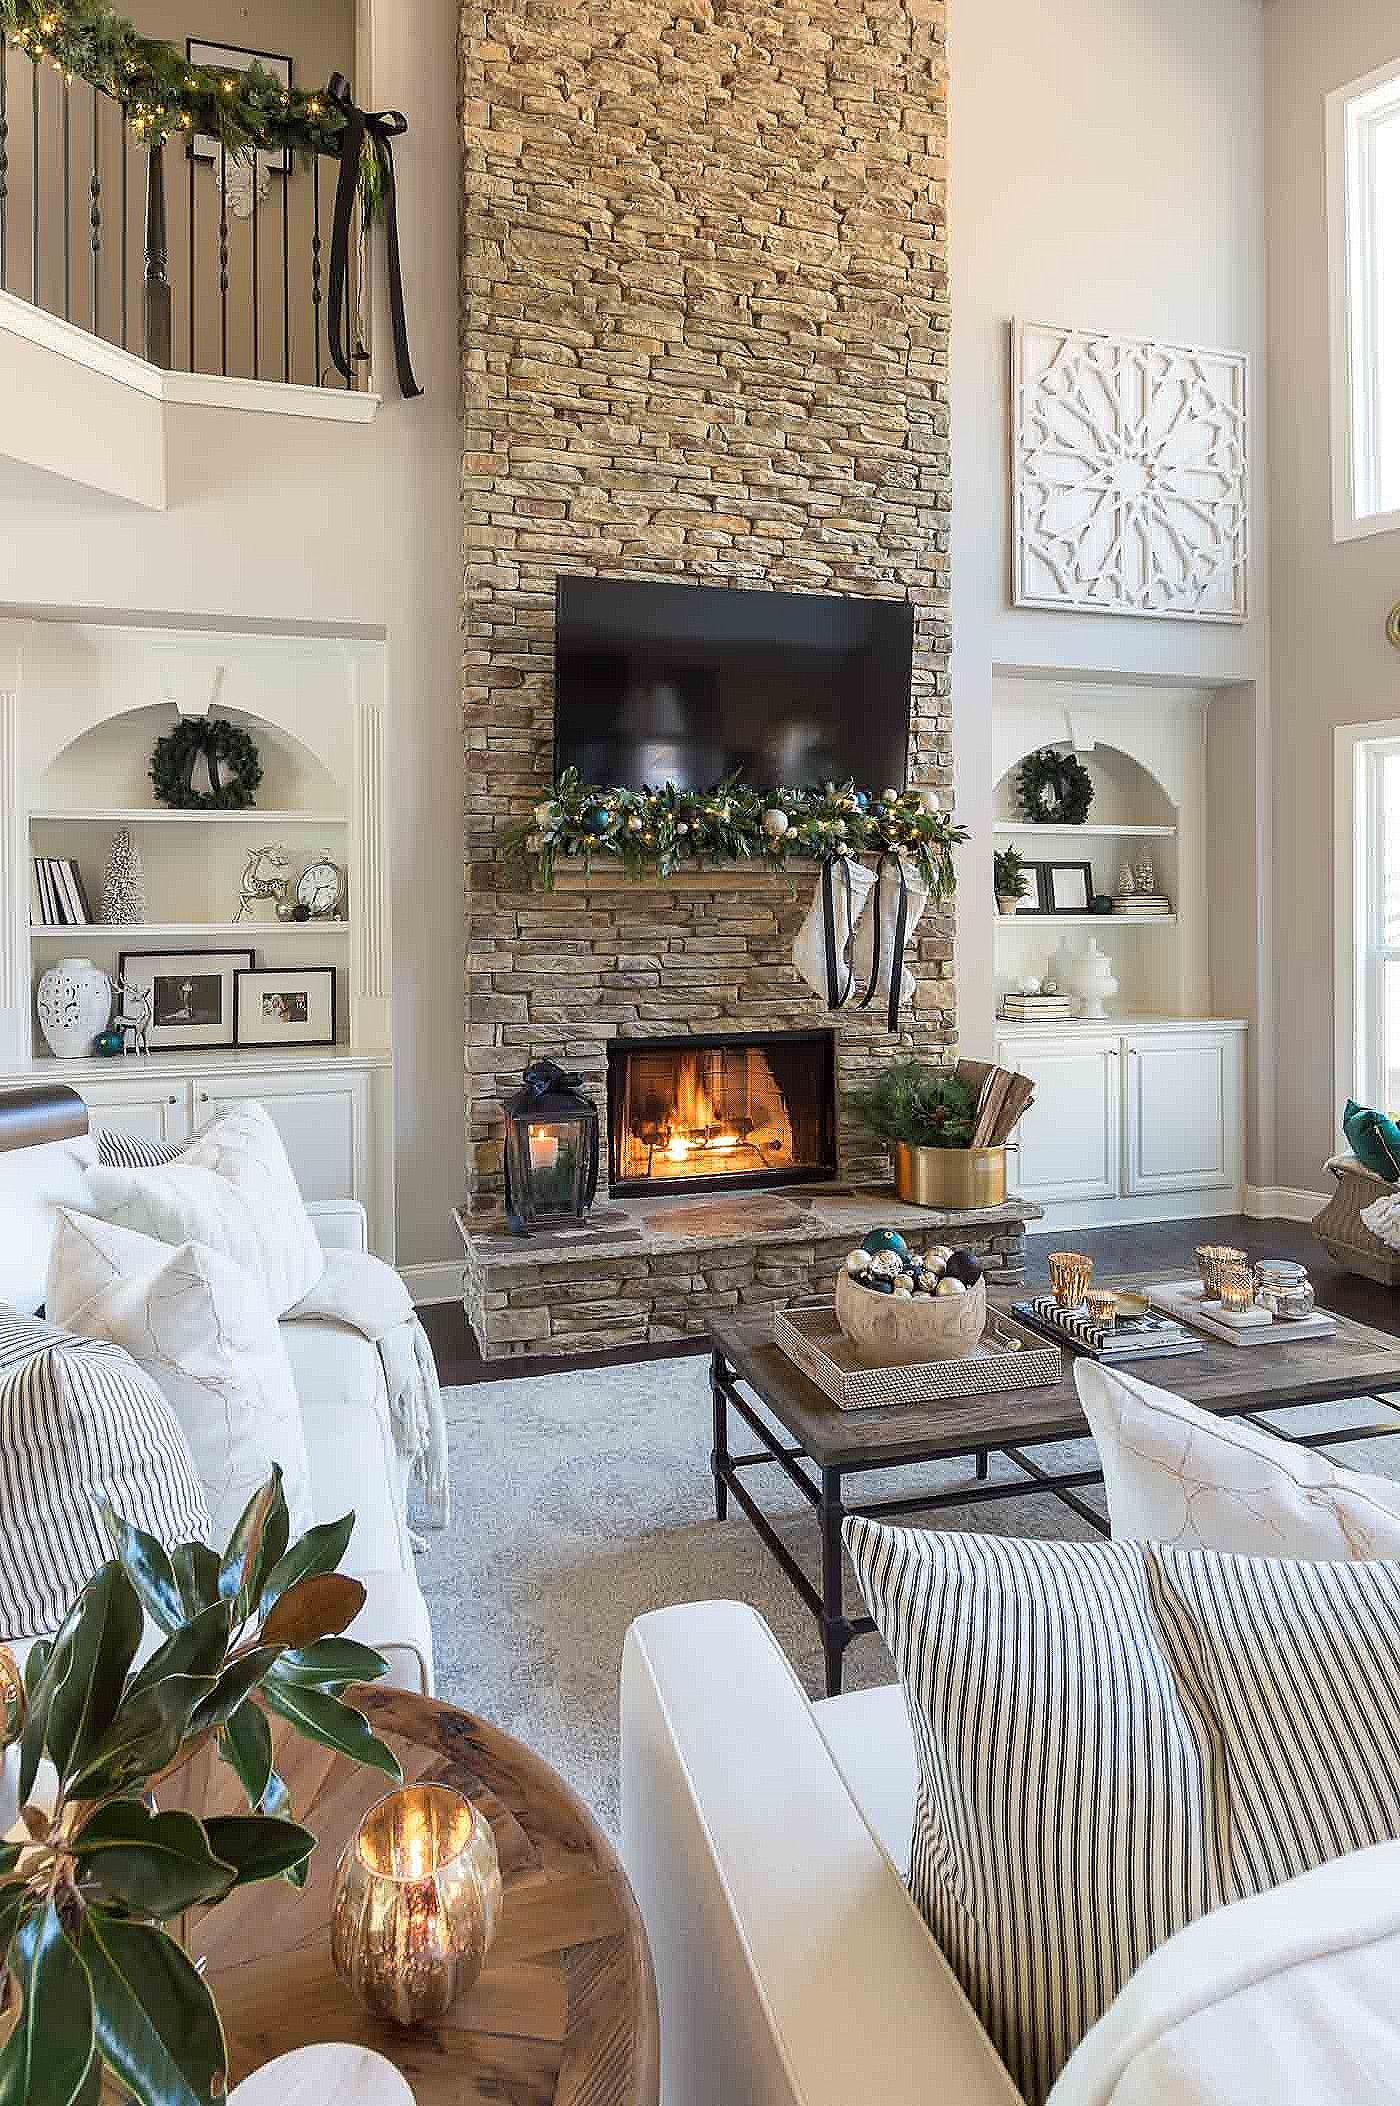 Elegant Living Room Decorating Ideas: Pin By Archeonauteonlus On Living Room Ideas (With Images